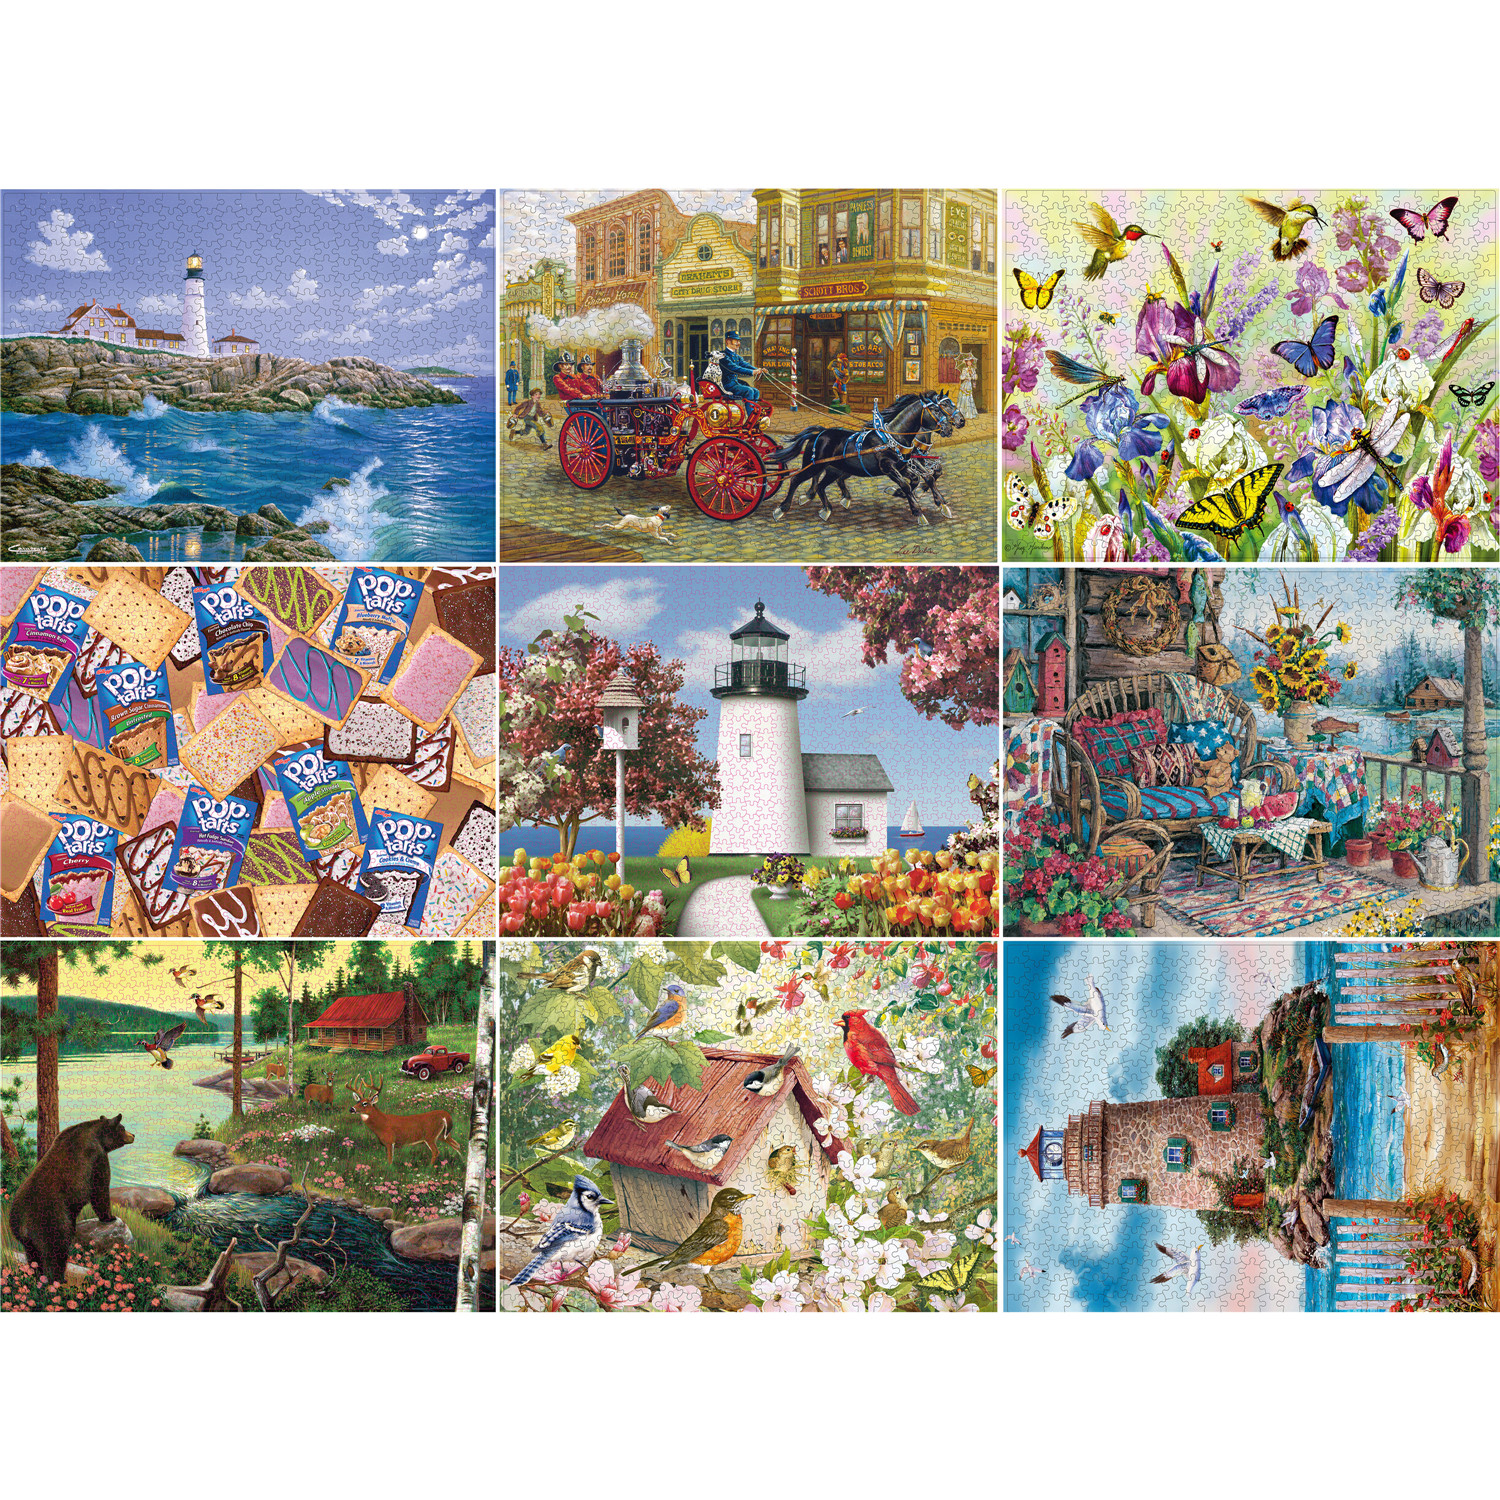 300/550/1000 Pieces <font><b>Puzzle</b></font> Kids Jigsaw <font><b>Puzzles</b></font> Noctilucent Educational Toys For Children Adult <font><b>Puzzles</b></font>